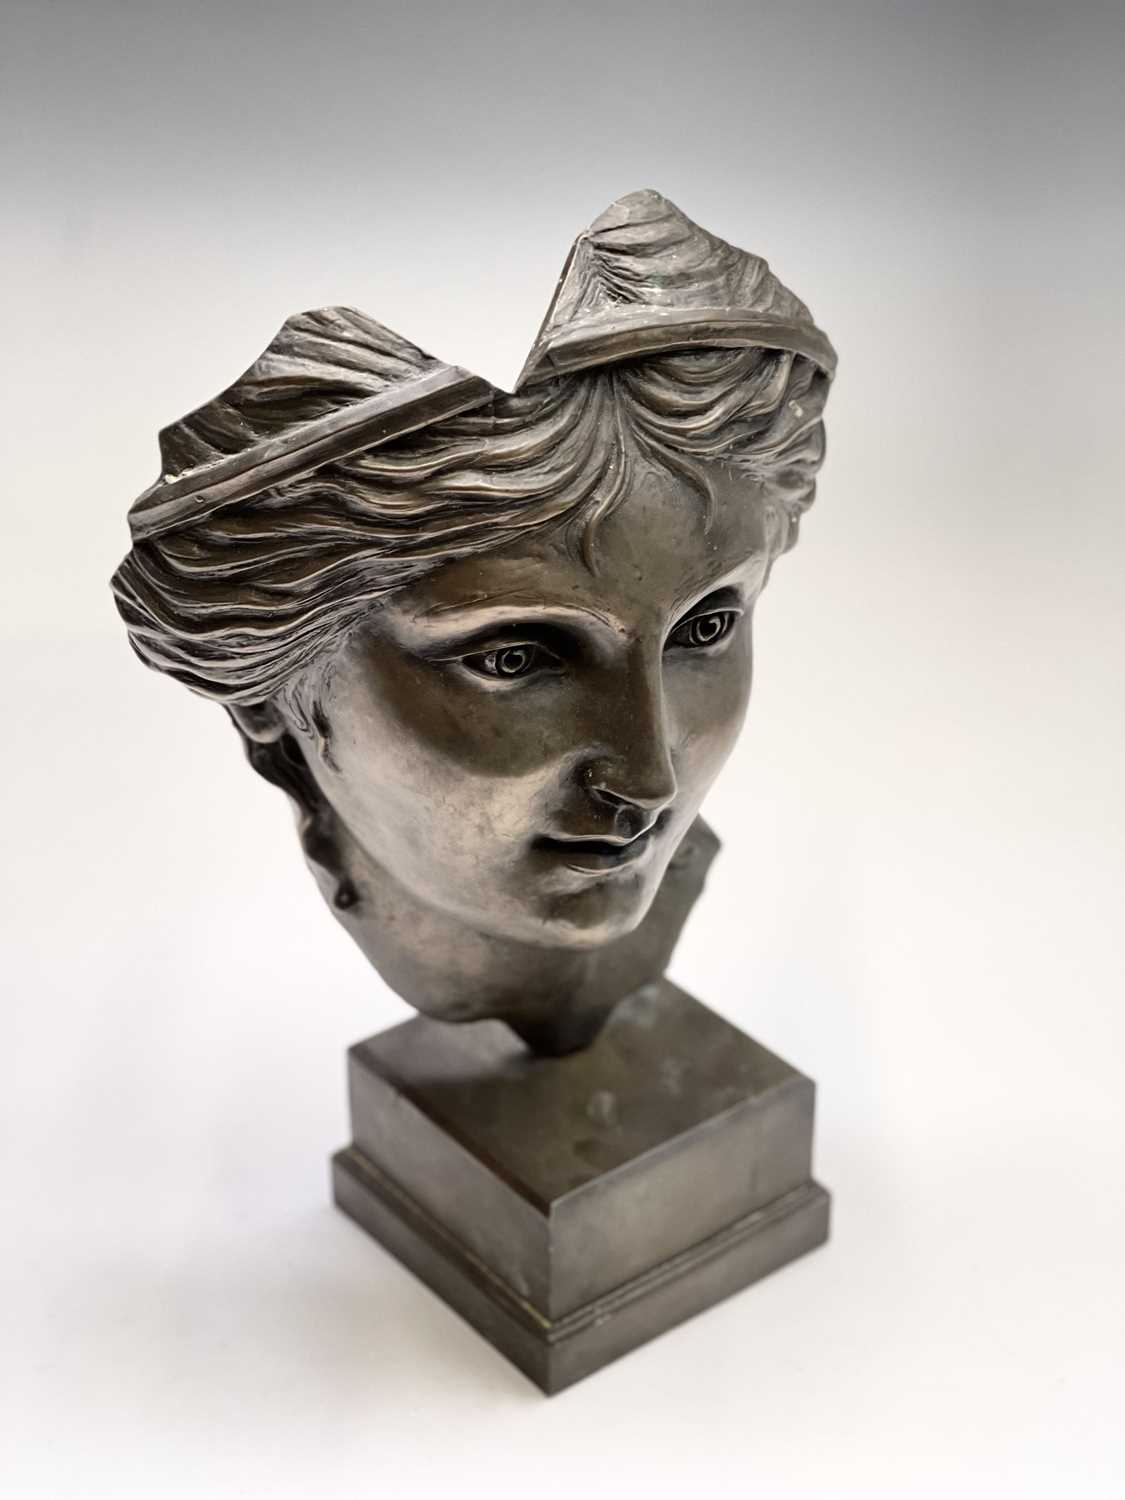 Alec WILES (1924)Aphrodite Bronzed resin mask and plinth Height 35cm - Image 6 of 8